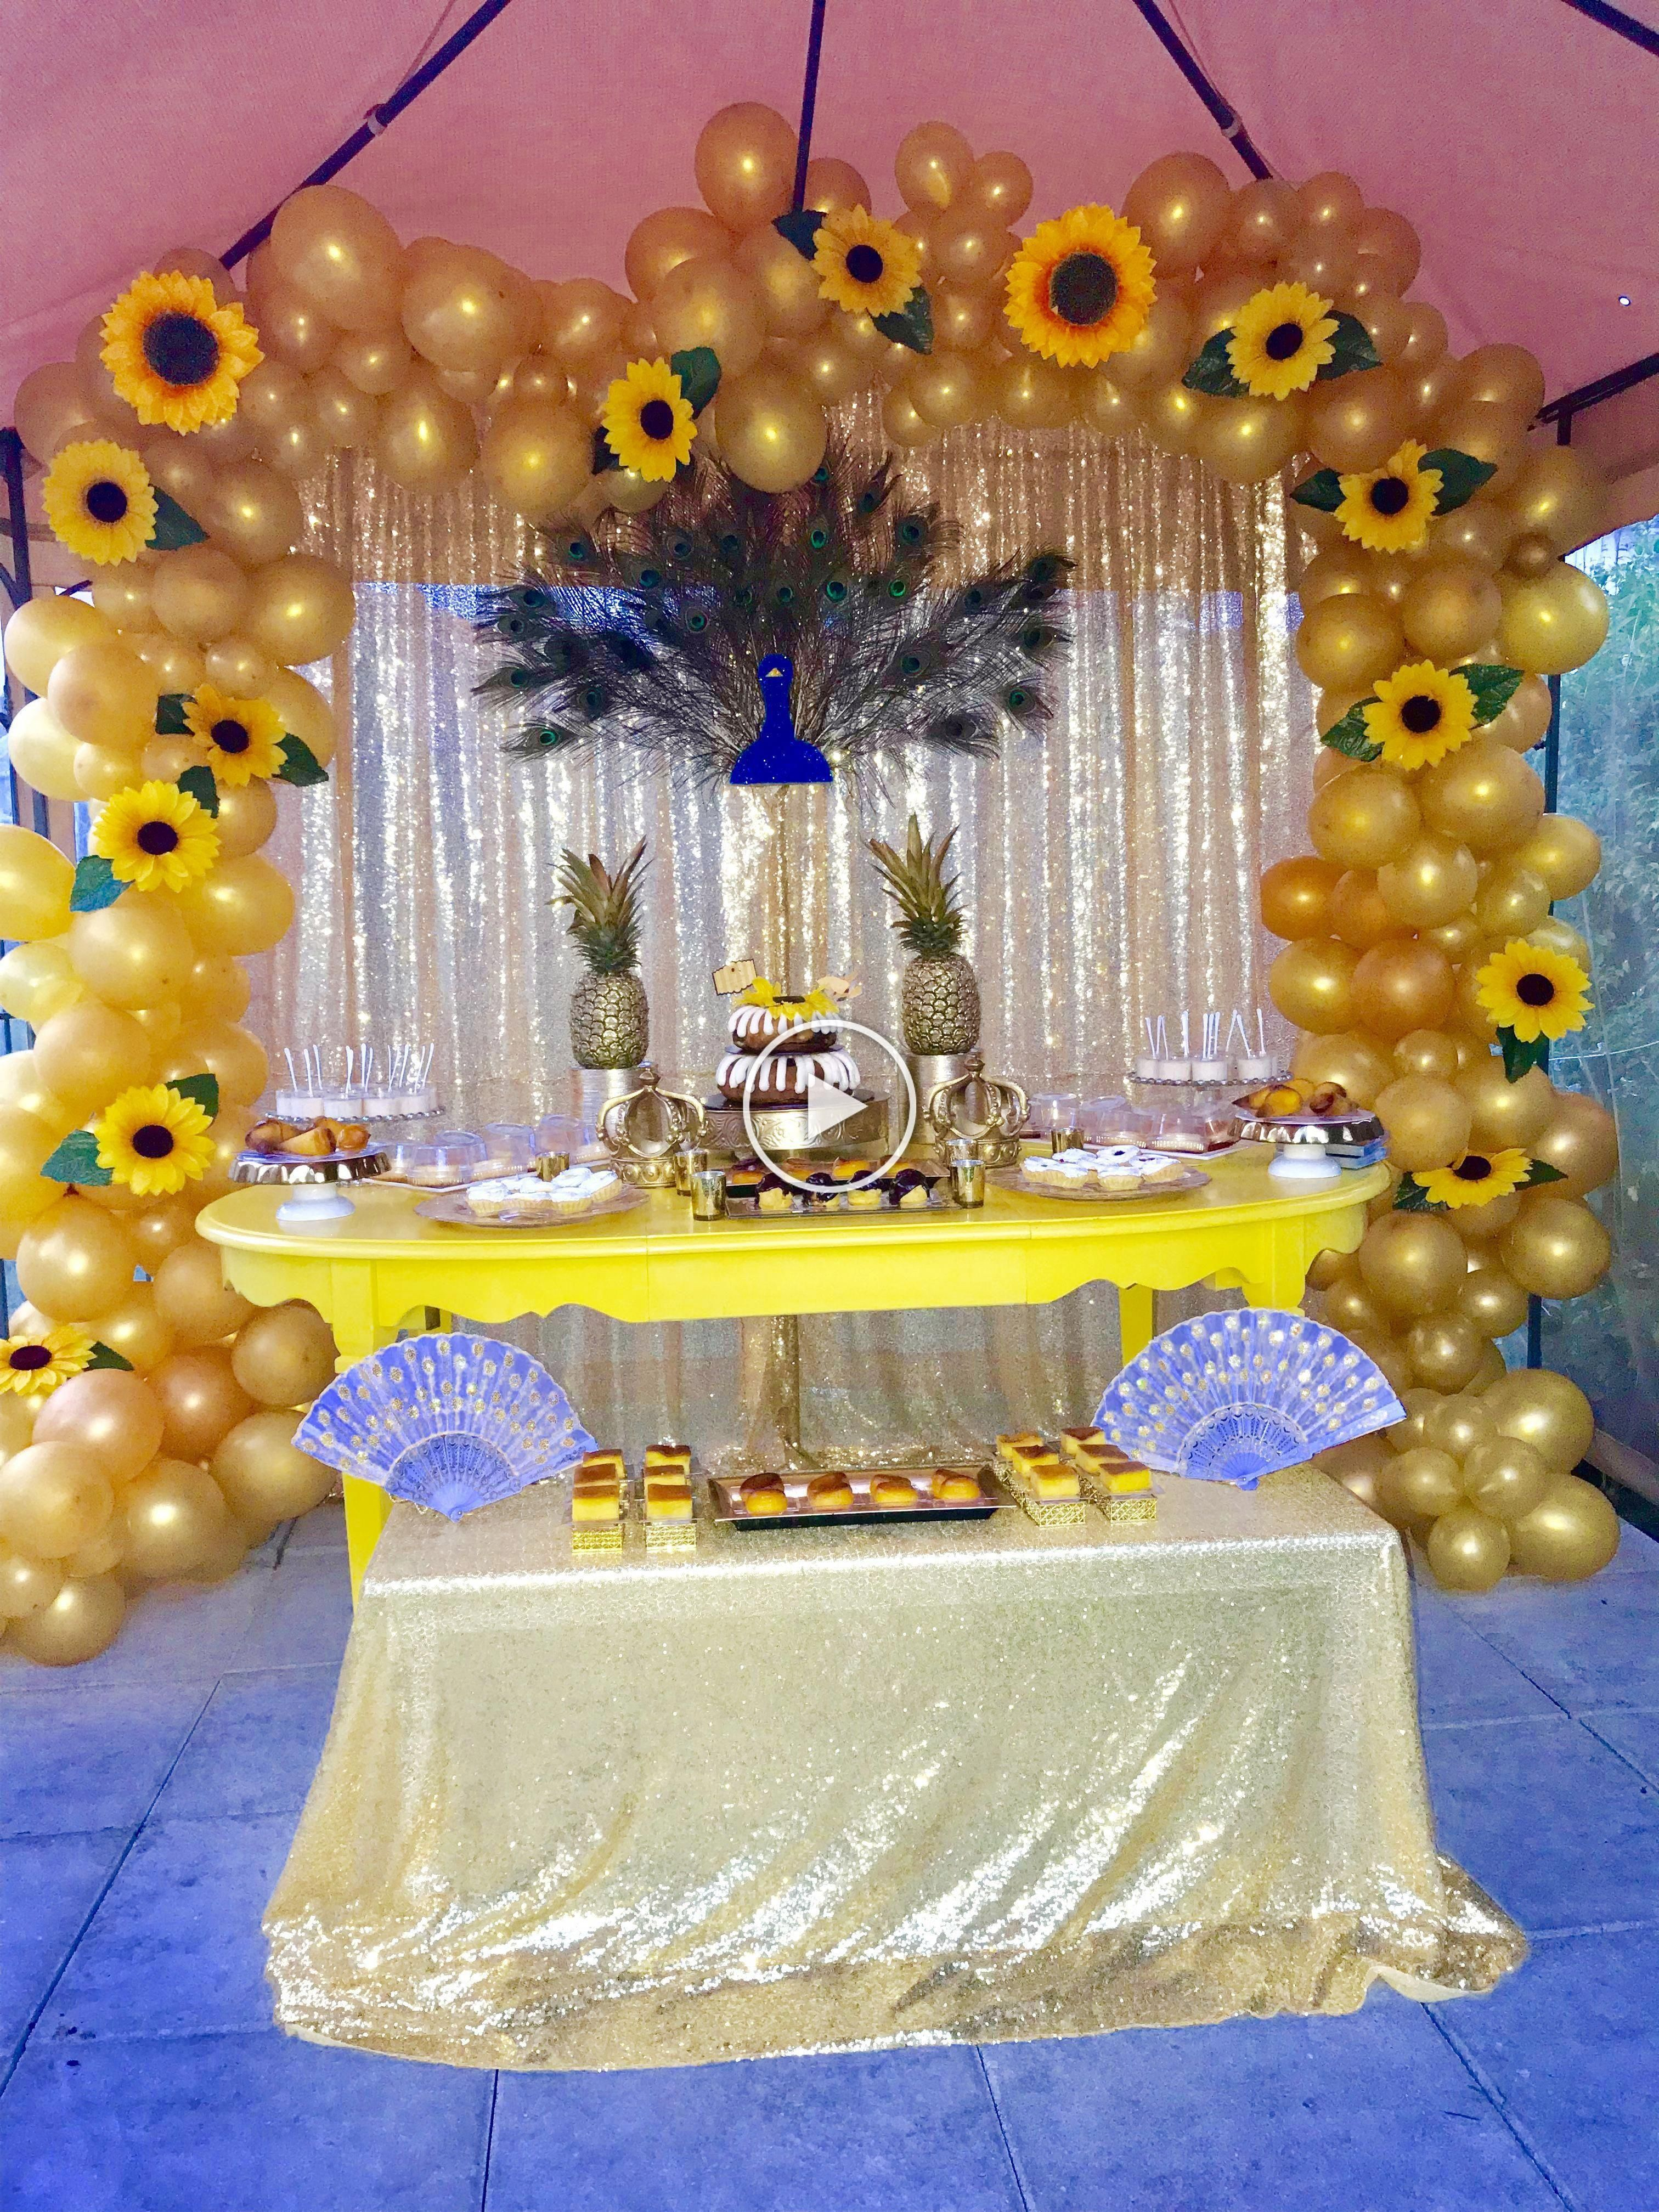 Favorite budgeted quinceanera party ideas Contact us in